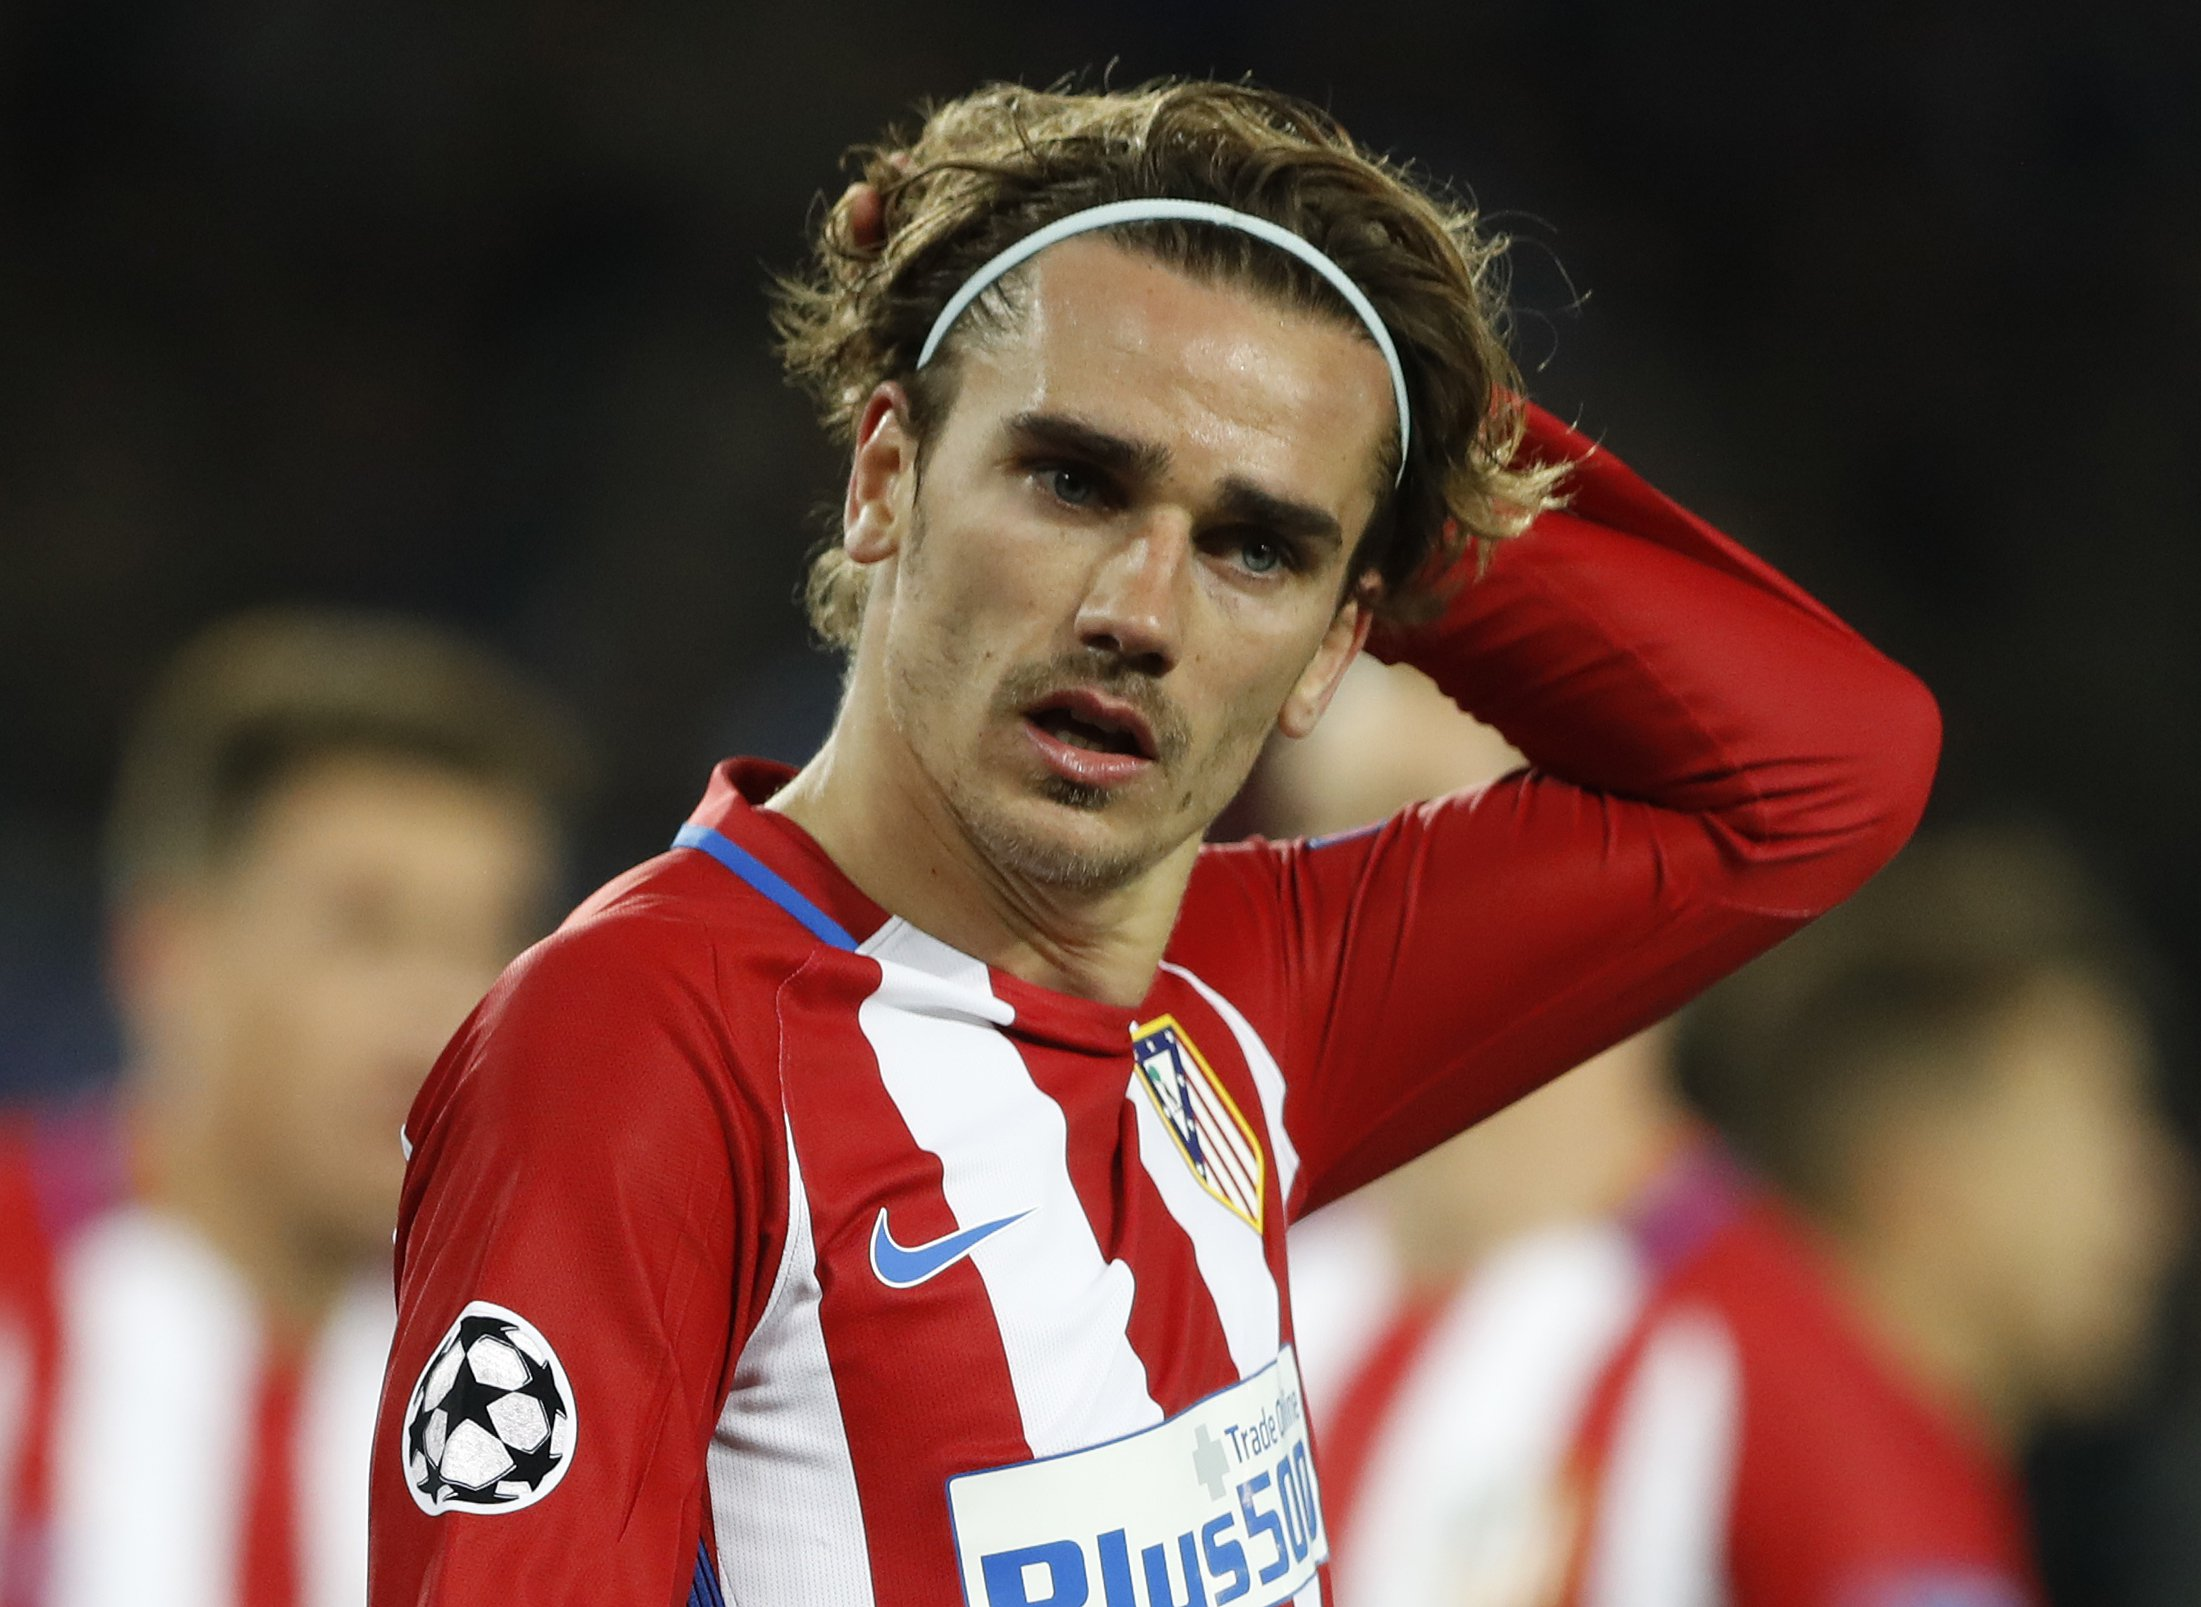 Jose Mourinho told to sign Kylian Mbappe and Romelu Lukaku ahead of Antoine Griezmann for Manchester United